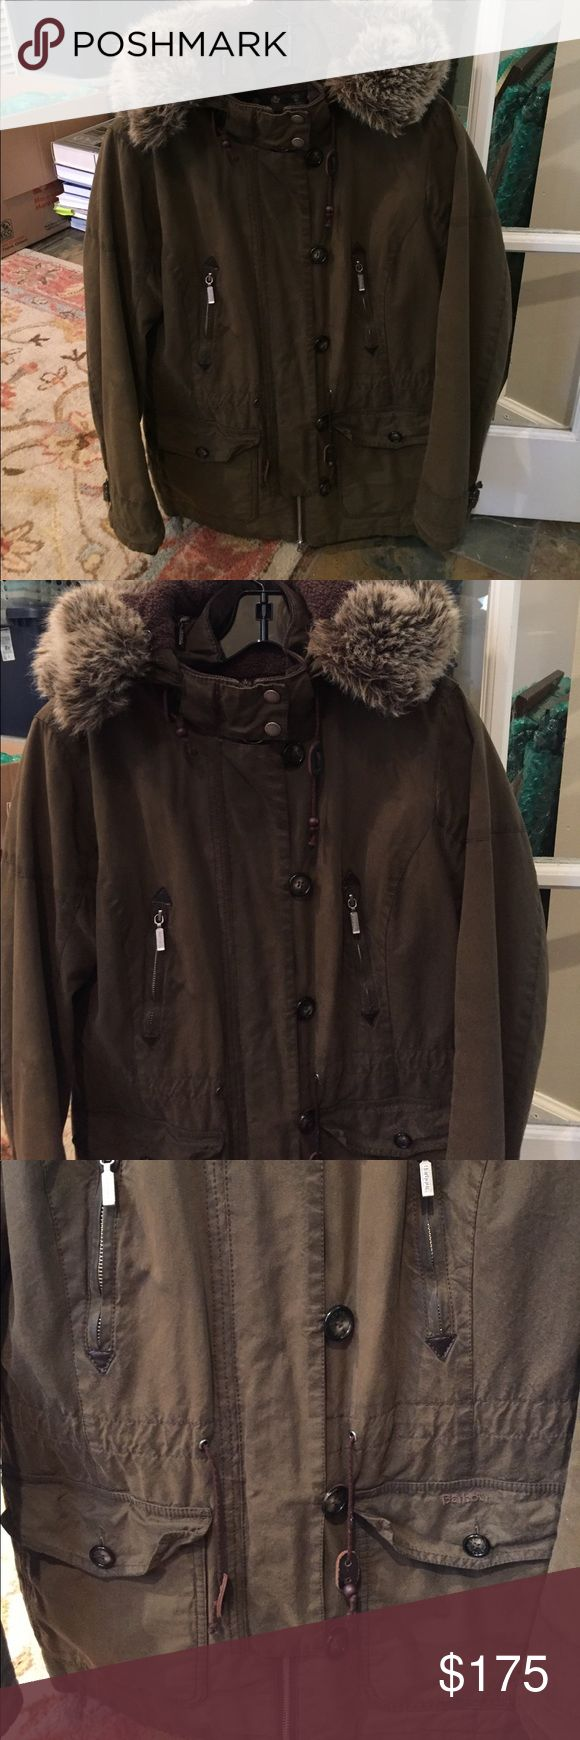 Barbour Vintage Troop Waxed Parka Jacket!! Barbour Vintage Troop Waxed Parka Jacket!!! Hood can be removed and fur is detachable!! Drawstring waist! Crazy warm!! Barbour Jackets & Coats Utility Jackets